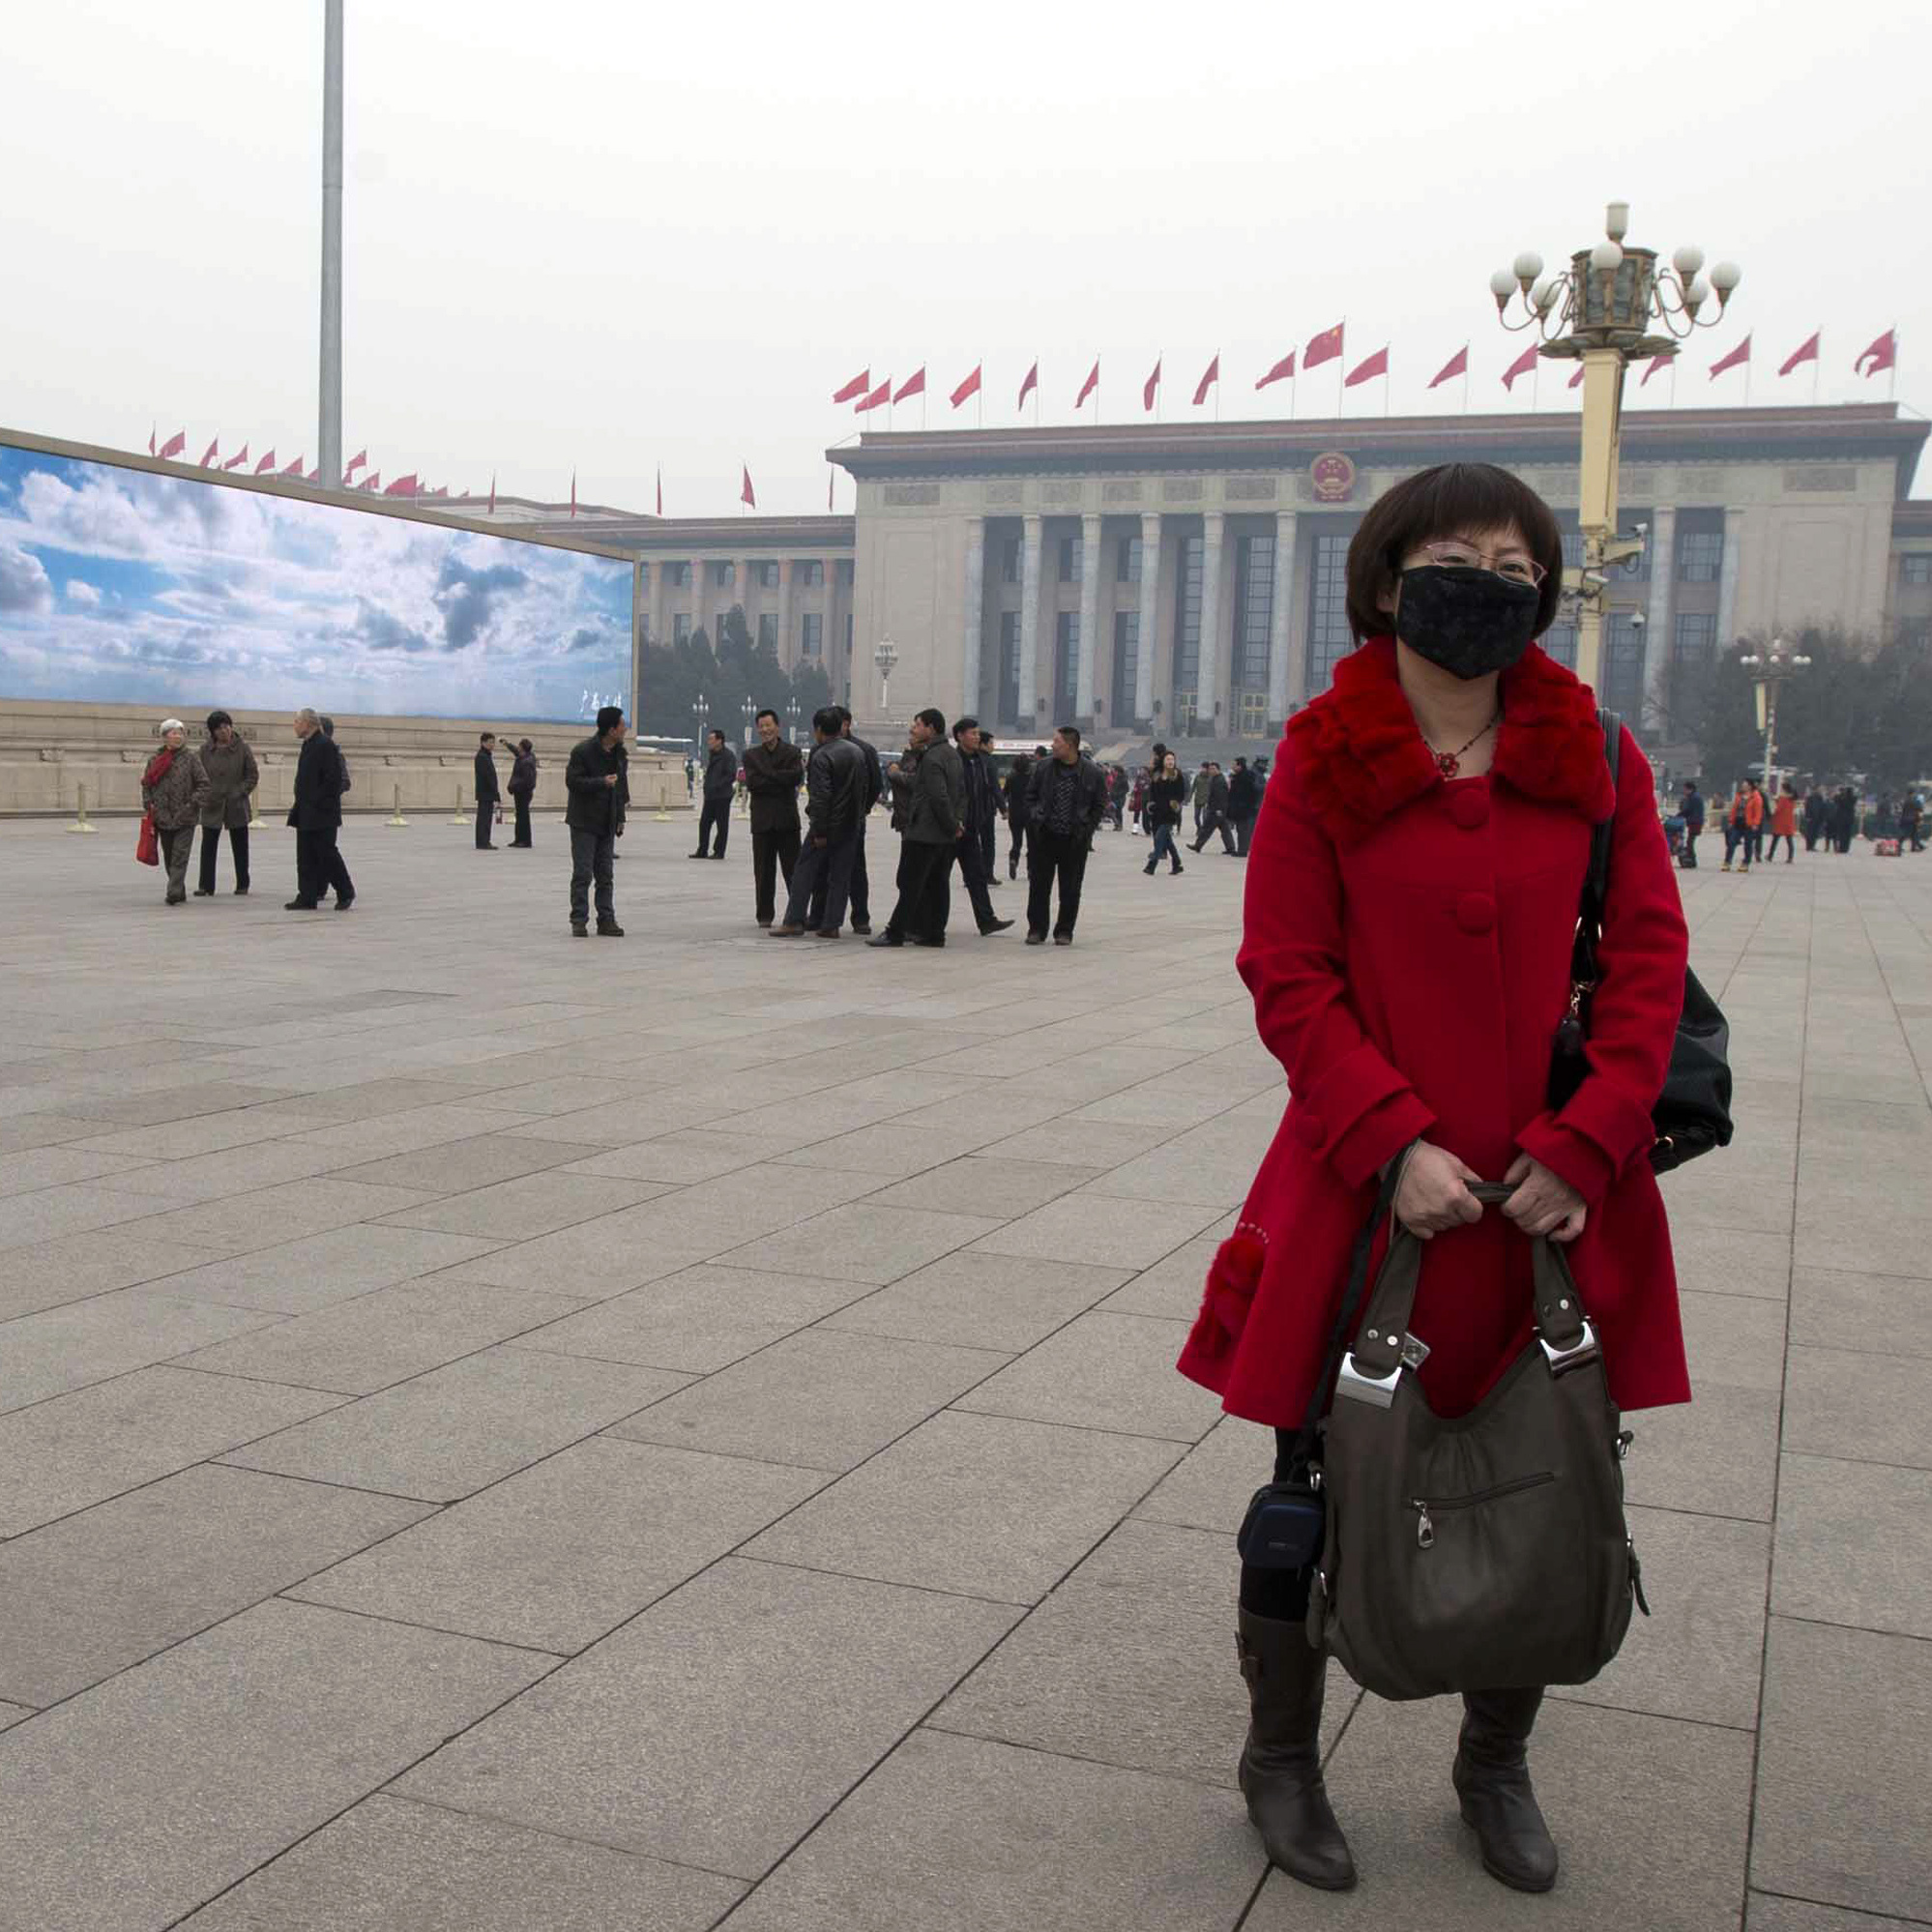 A woman wears a mask as she stands near a giant display depicting blue skies during a day of heavy pollution on Tiananmen Square in Beijing on March 6.